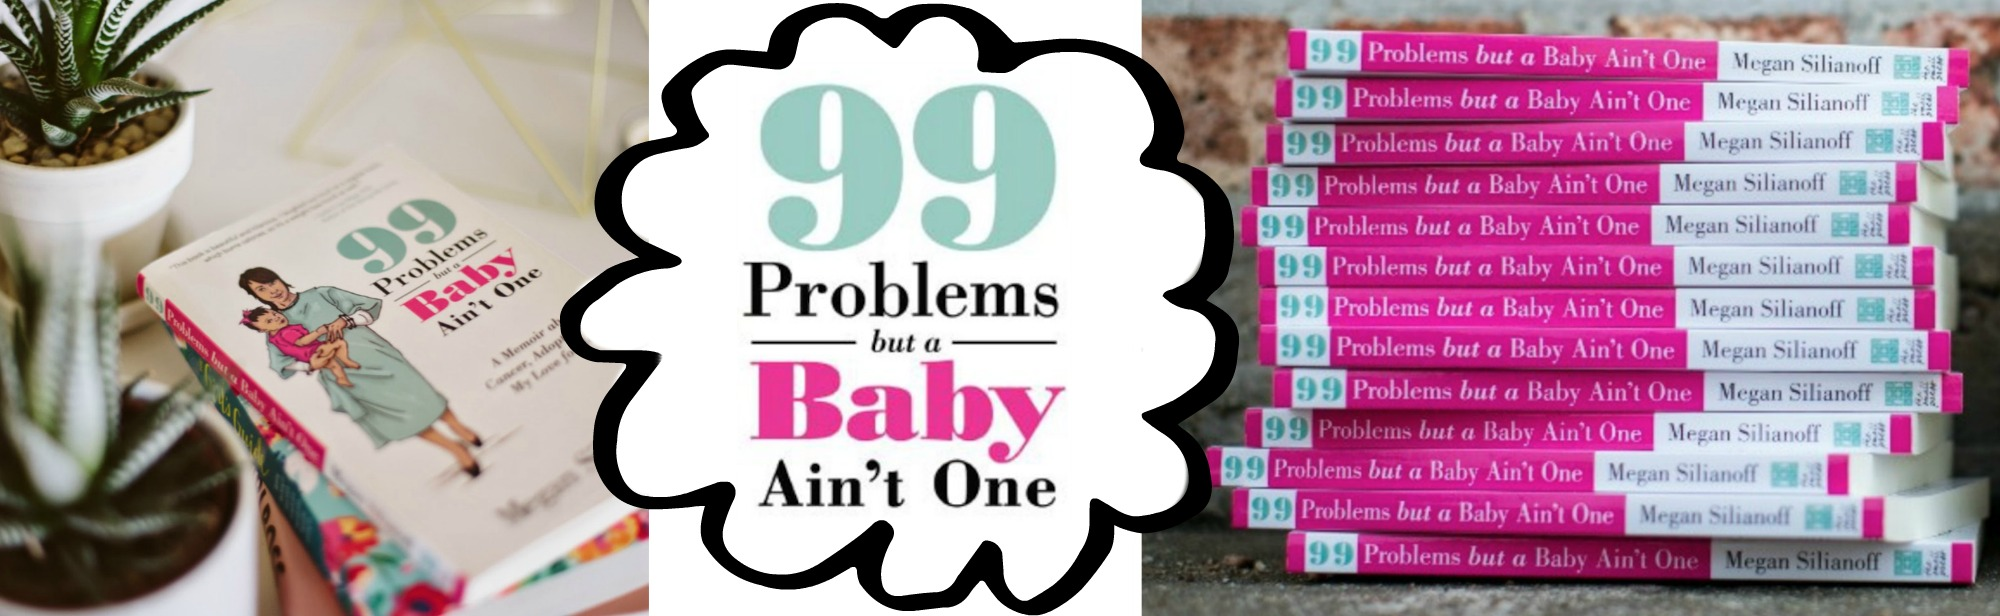 99 problems but a baby ain't one.jpg